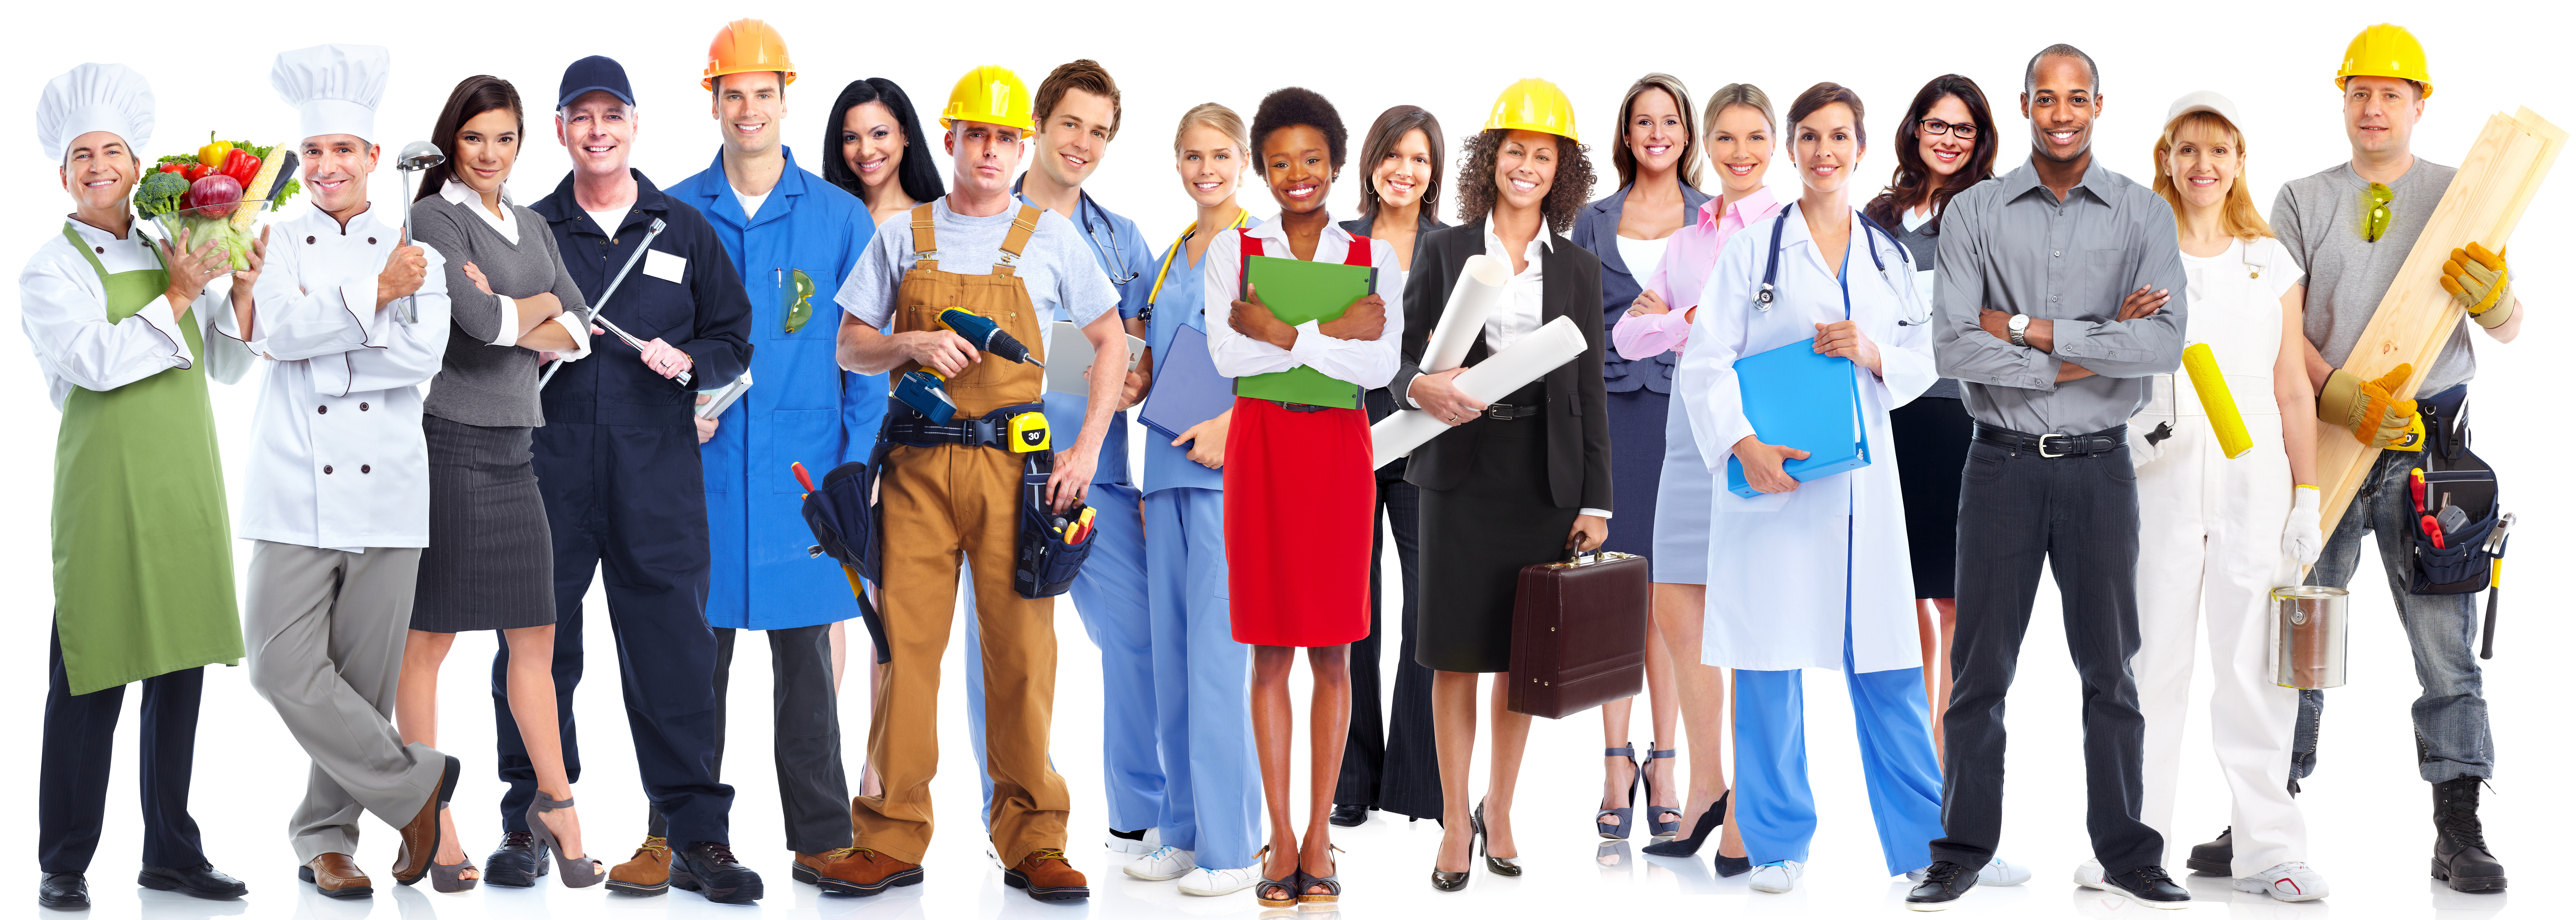 Workers photo